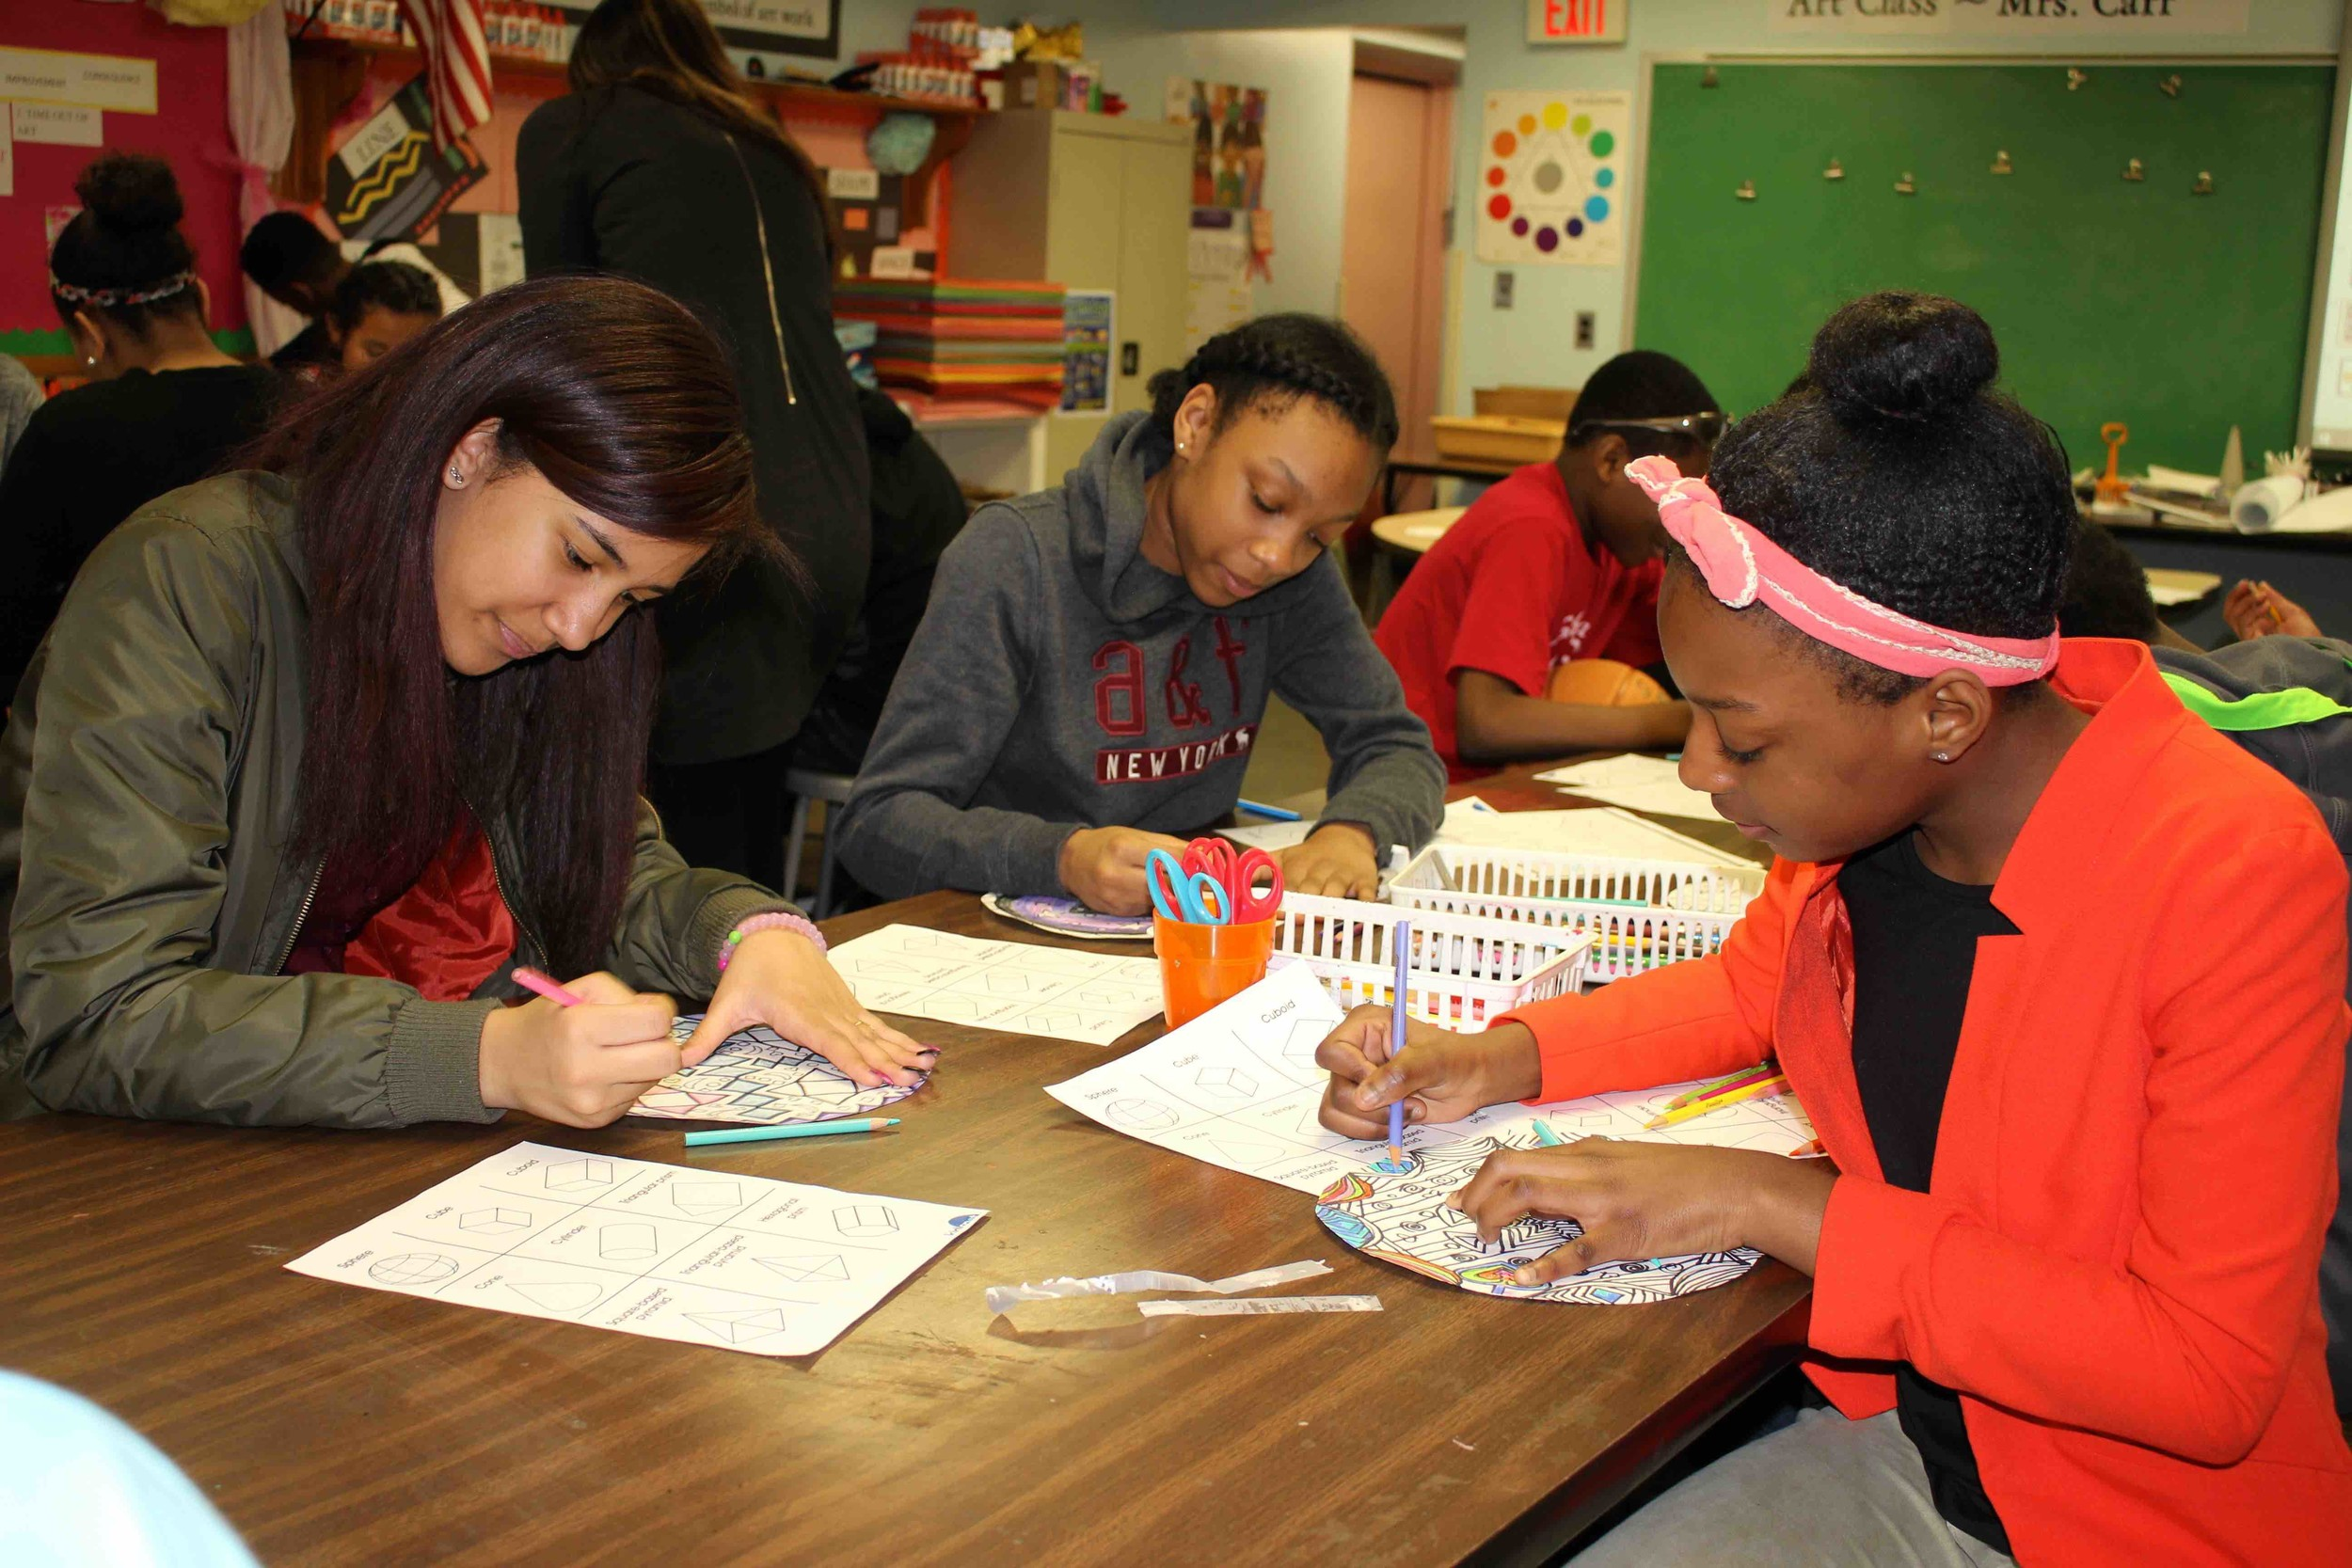 Alyssa Perez, from left, Kayla Allen and Kamoy Campbell joined classmates in creating mandalas using geometry nets.